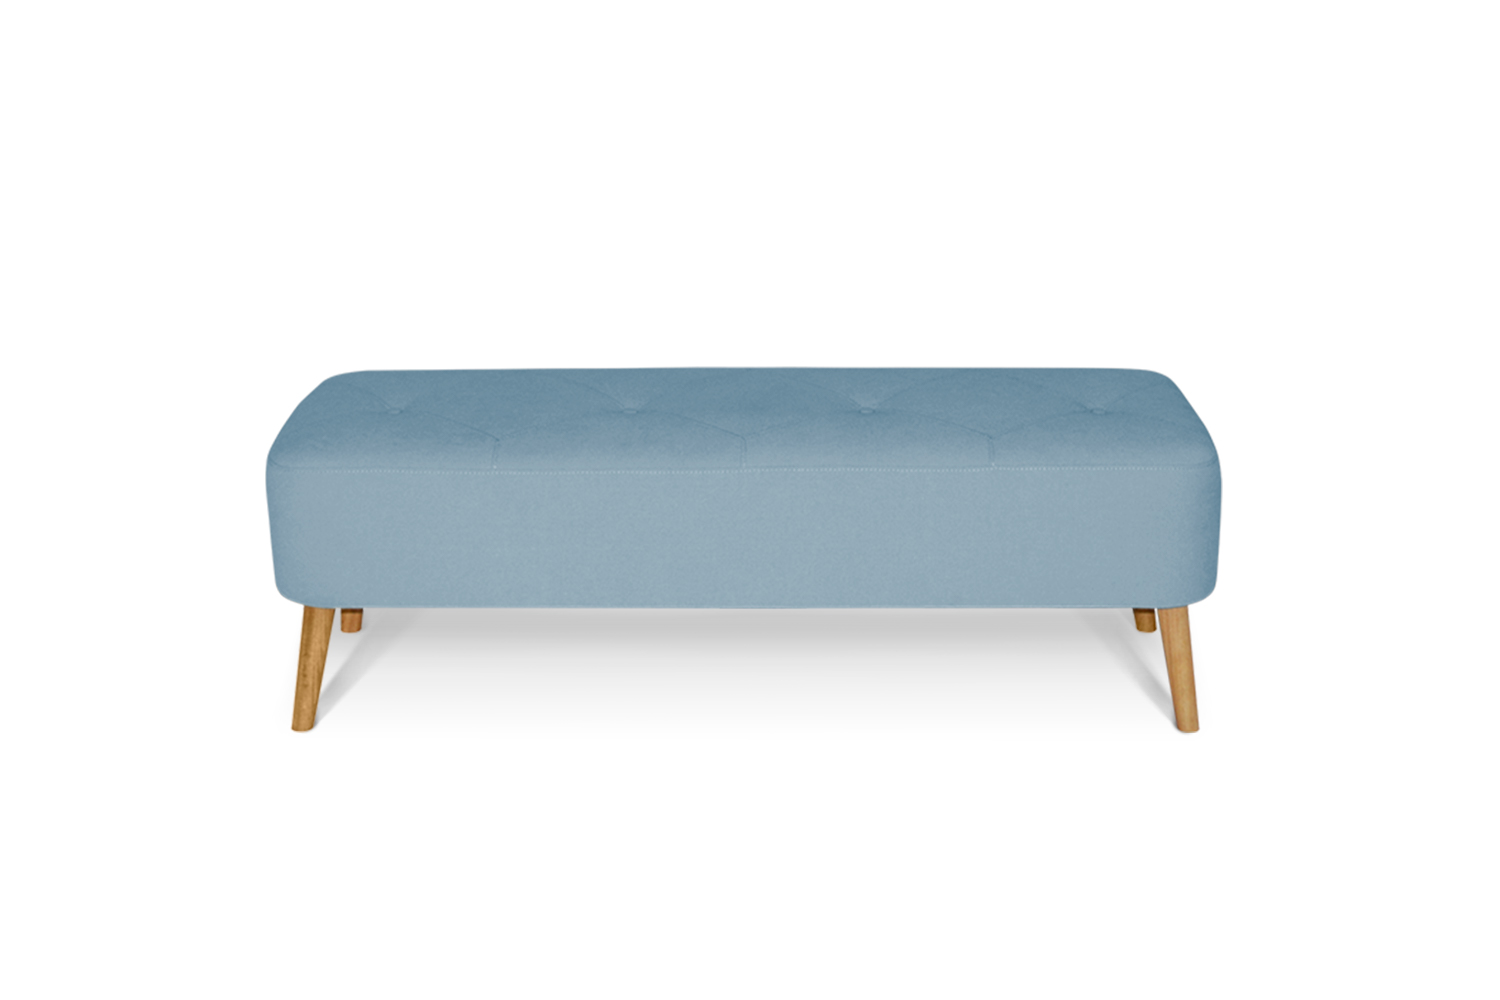 In picture Bench Superior with fabric Delta 5142, Leg 100 Oak.